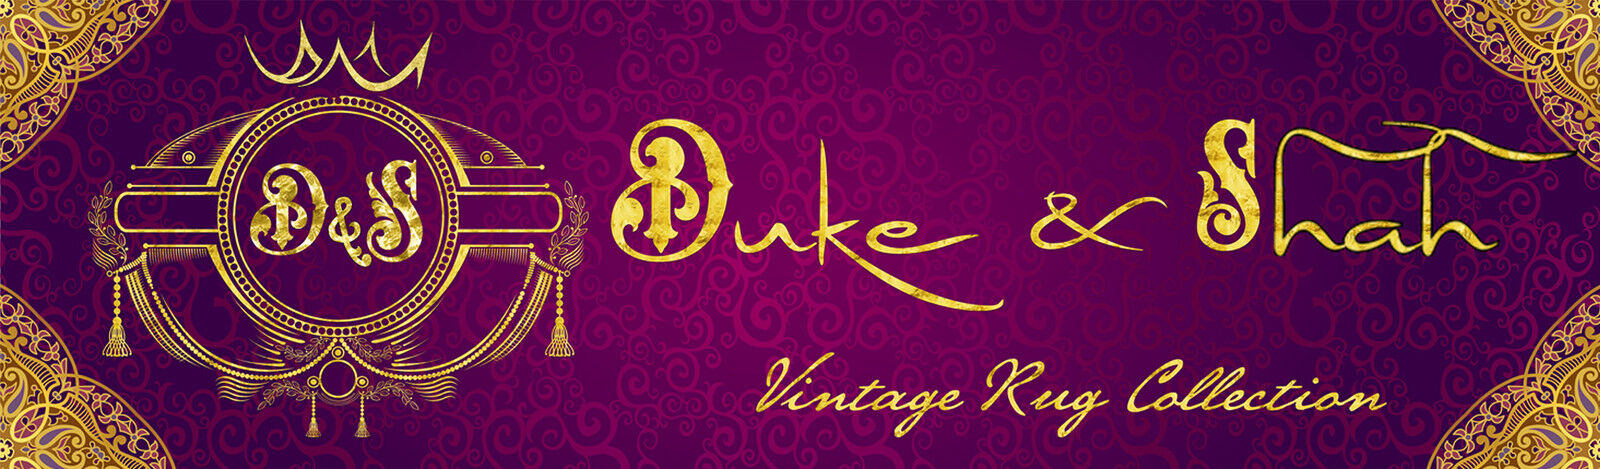 Duke and Shah Rugs Collection